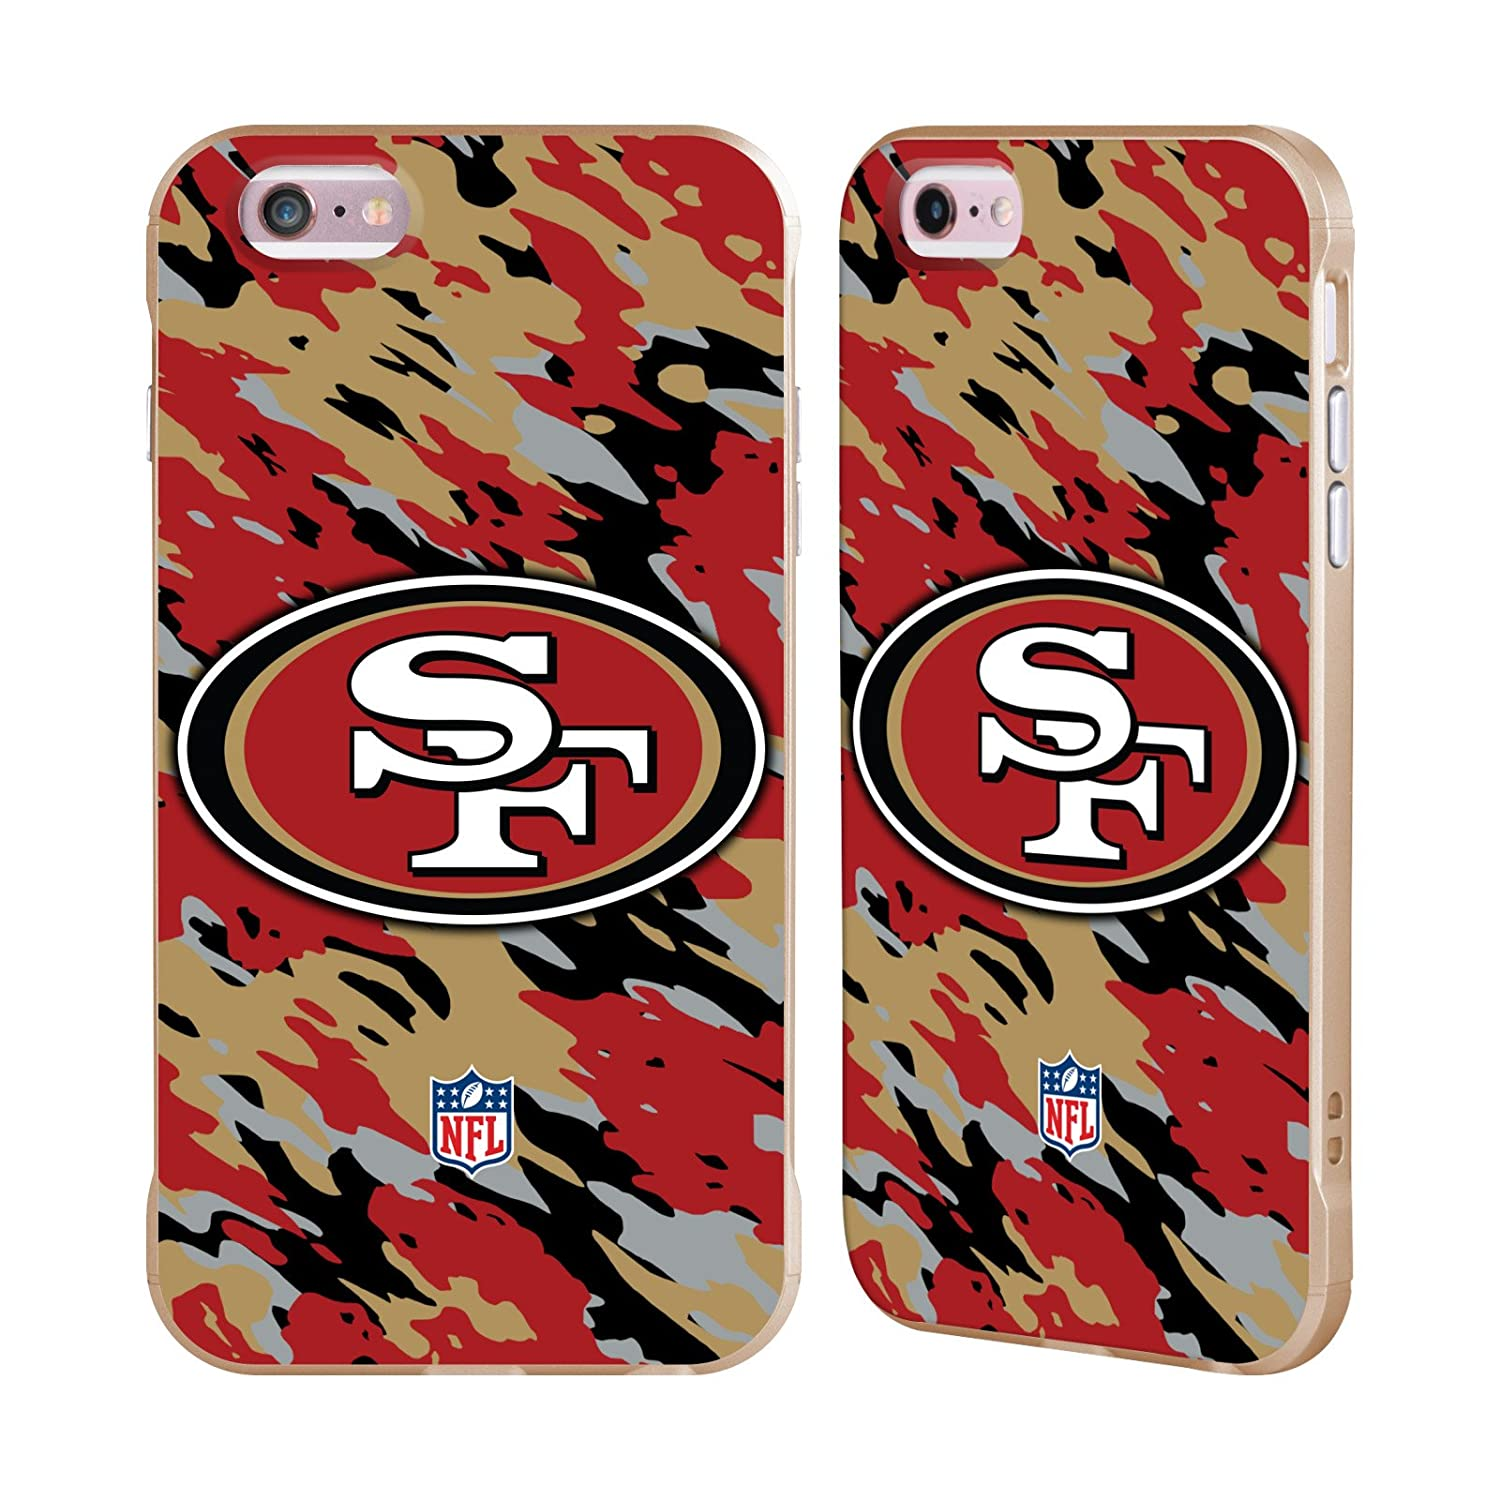 Ufficiale NFL Elmetto San Francisco 49Ers Logo Oro Fender Case per Apple iPhone 6/iPhone 6s Head Case Designs H6009-IPH6-NFLLOSFF-HEL